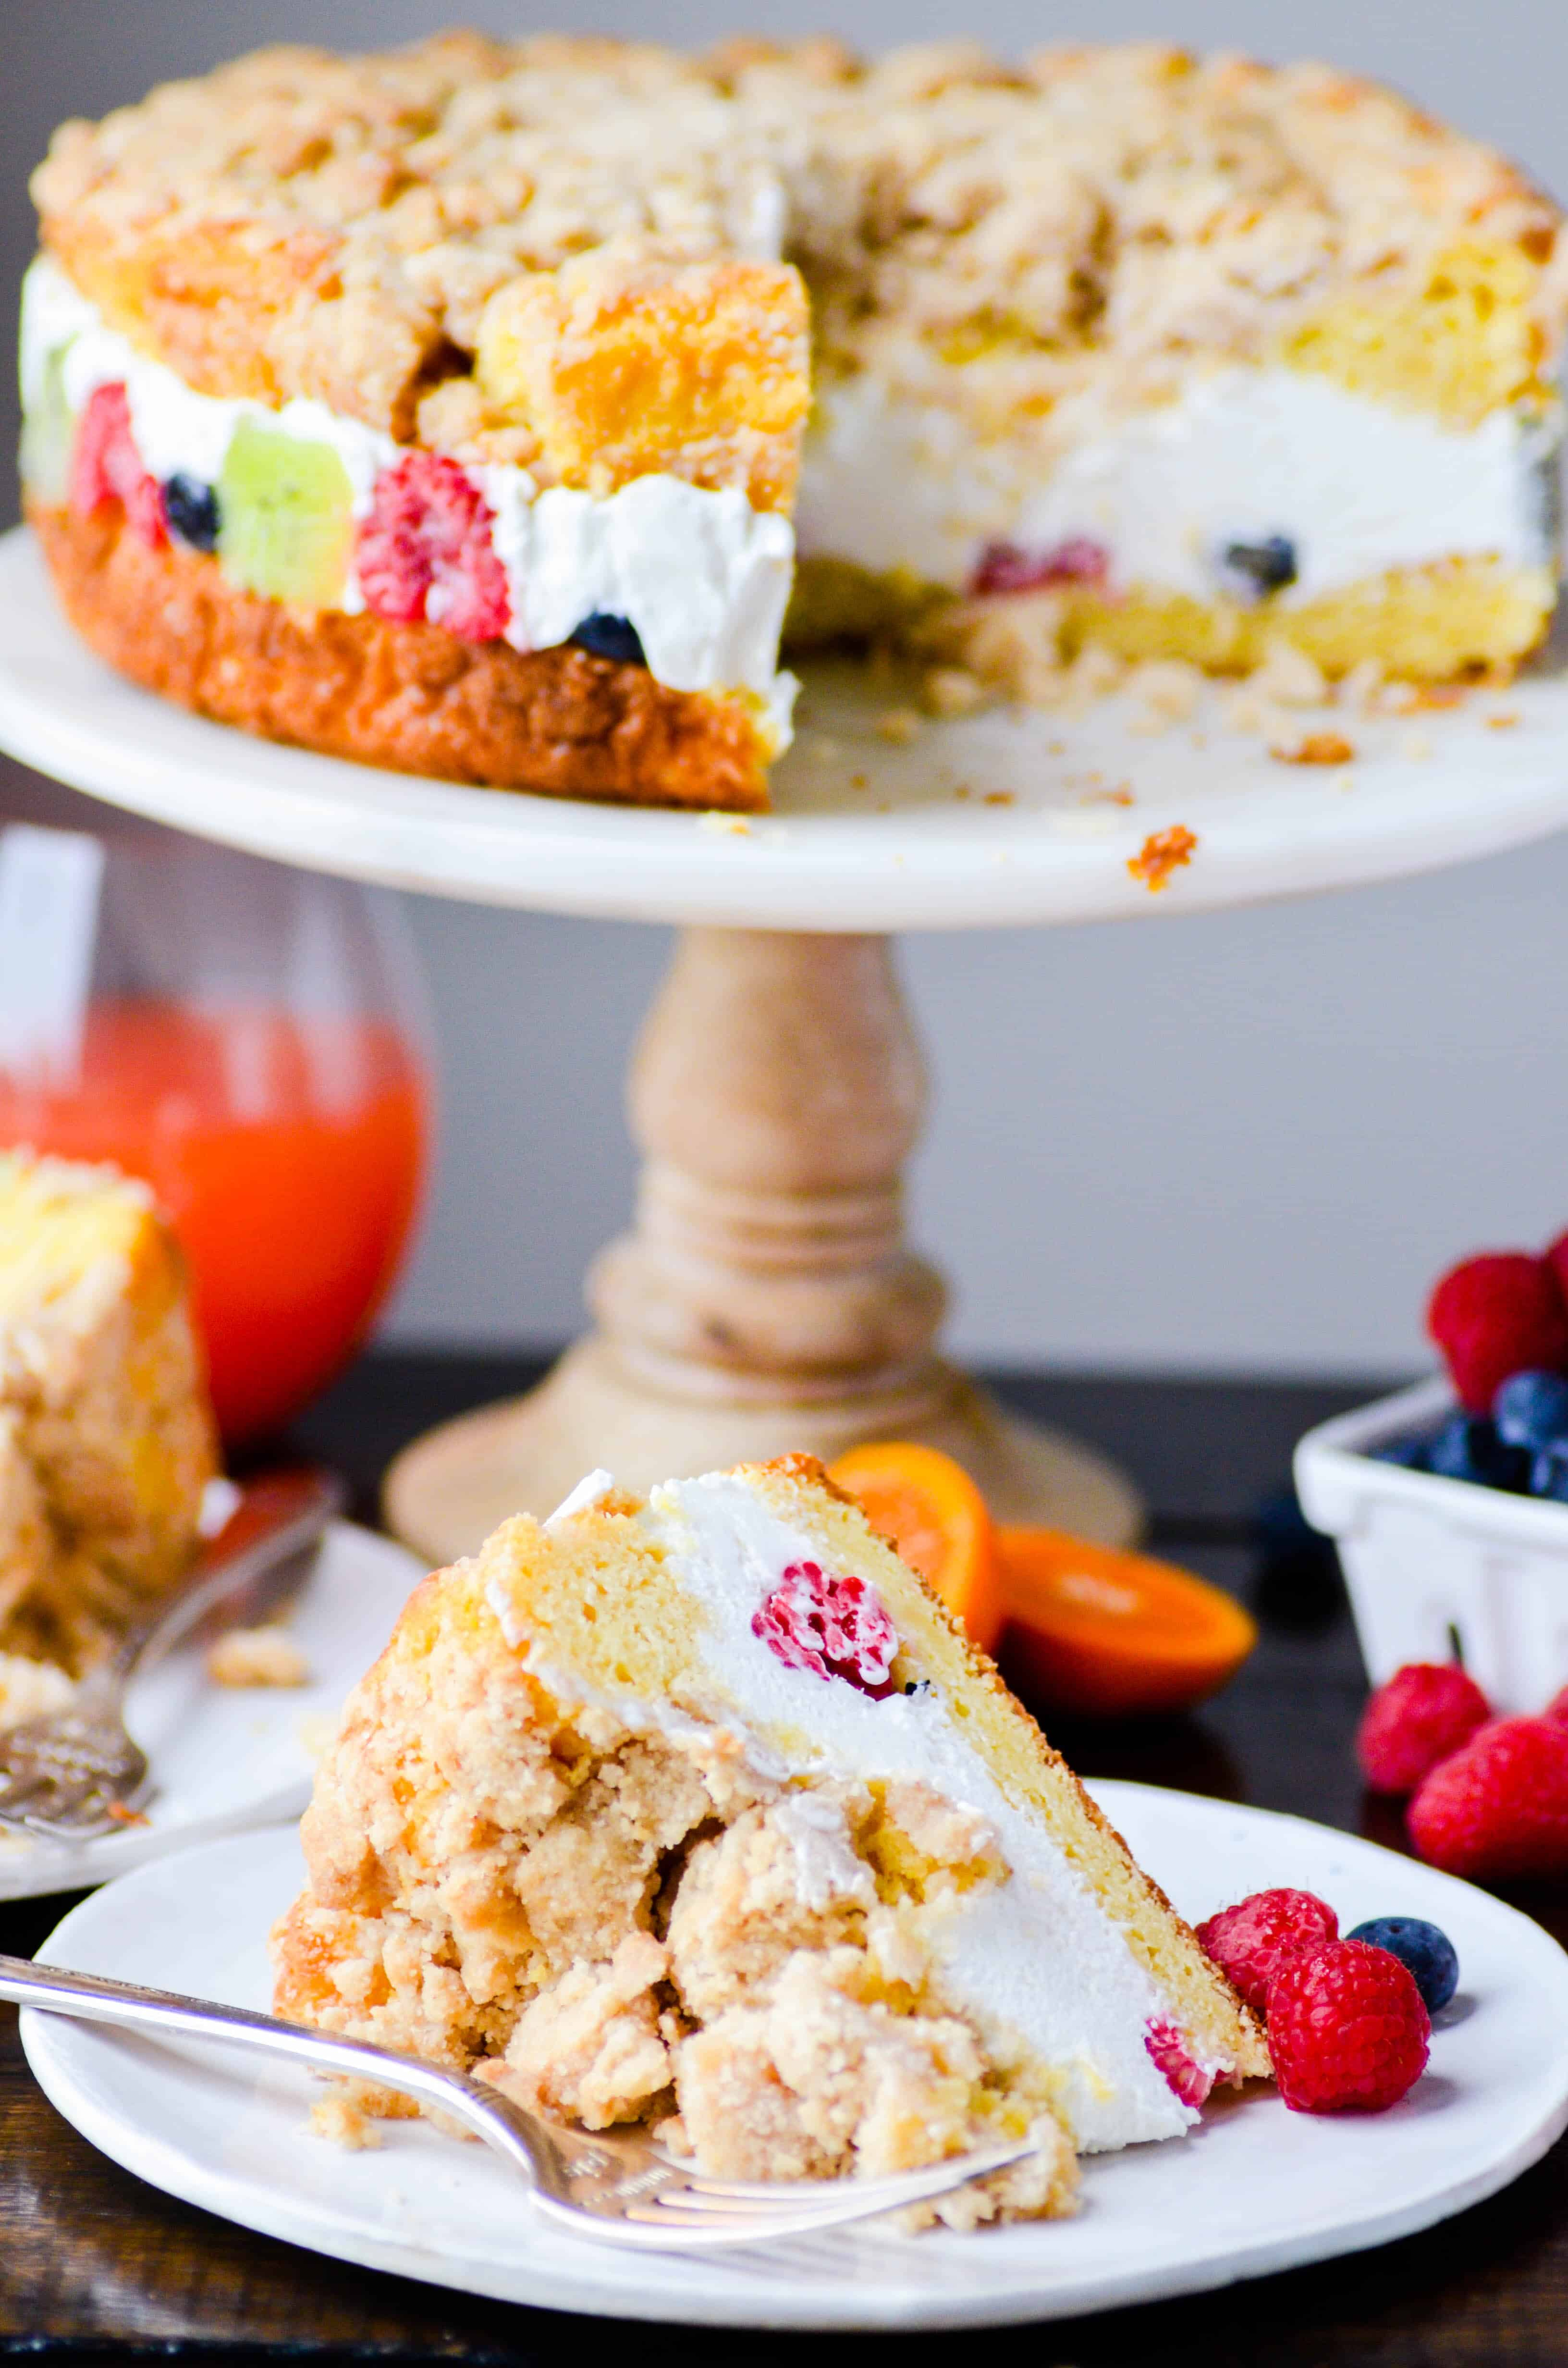 This gorgeous coffee cake is soft and moist, easy-to-make, and has a delicious layer of cheesecake and fruit in the middle!